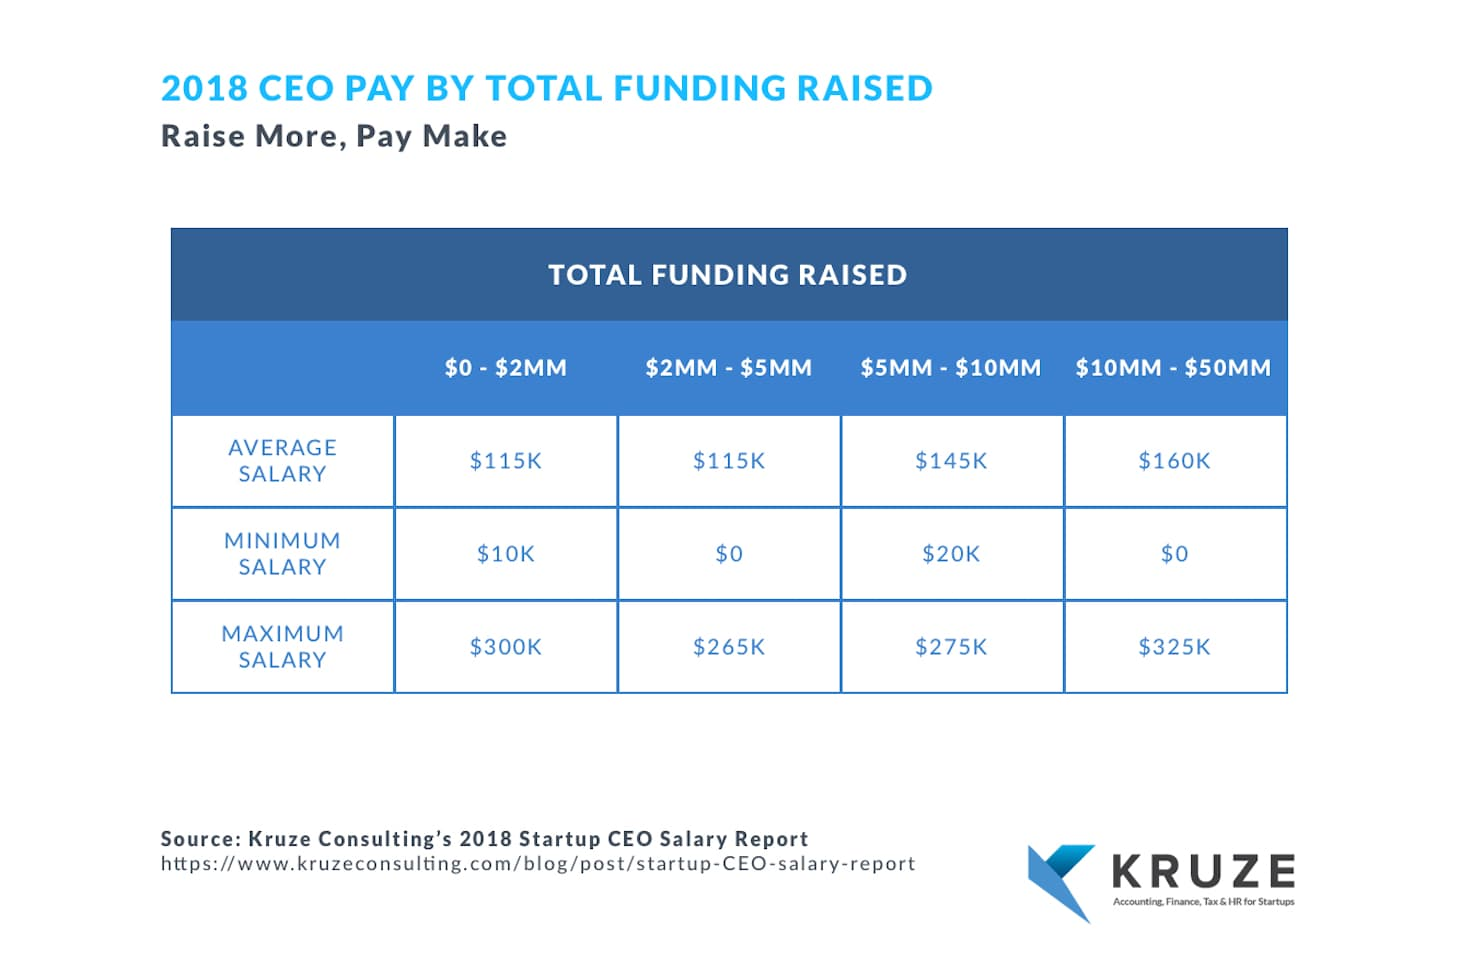 2018 CEO Pay by total funding raised